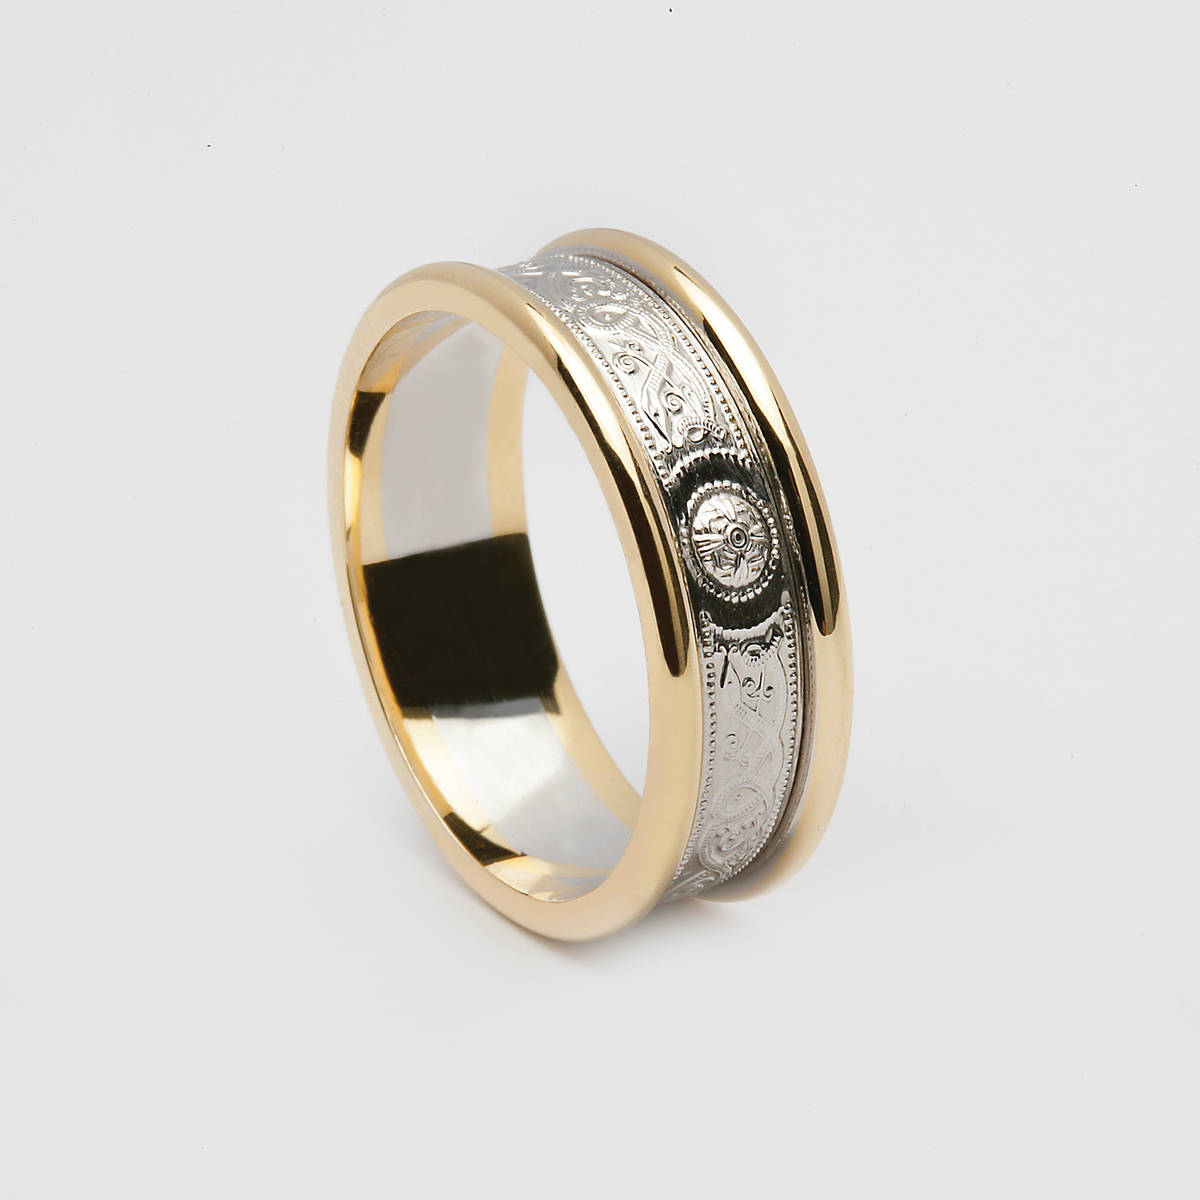 14 carat white gold Arda inspired unisex wedding ring with yellow gold rims.7.2mm